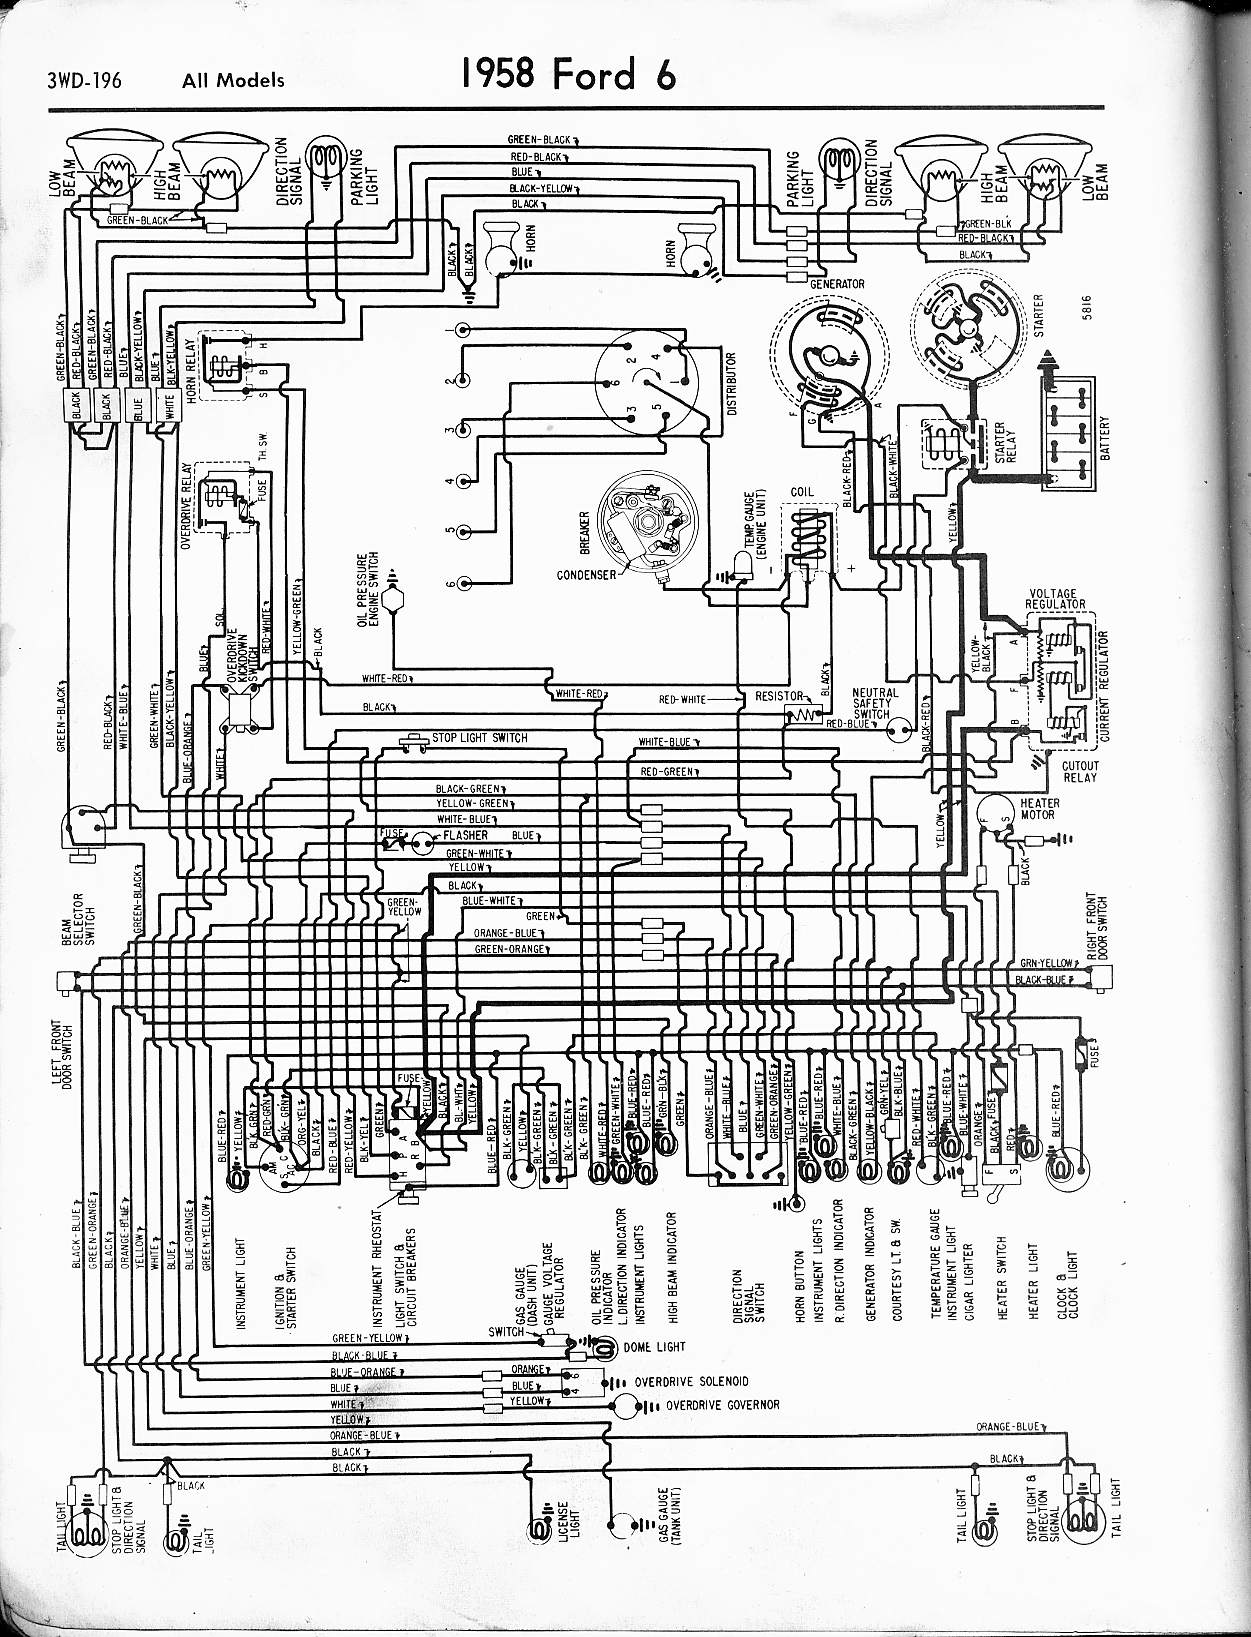 MWire5765 196 57 65 ford wiring diagrams Wiring Diagram for 1965 Chevy Truck at honlapkeszites.co